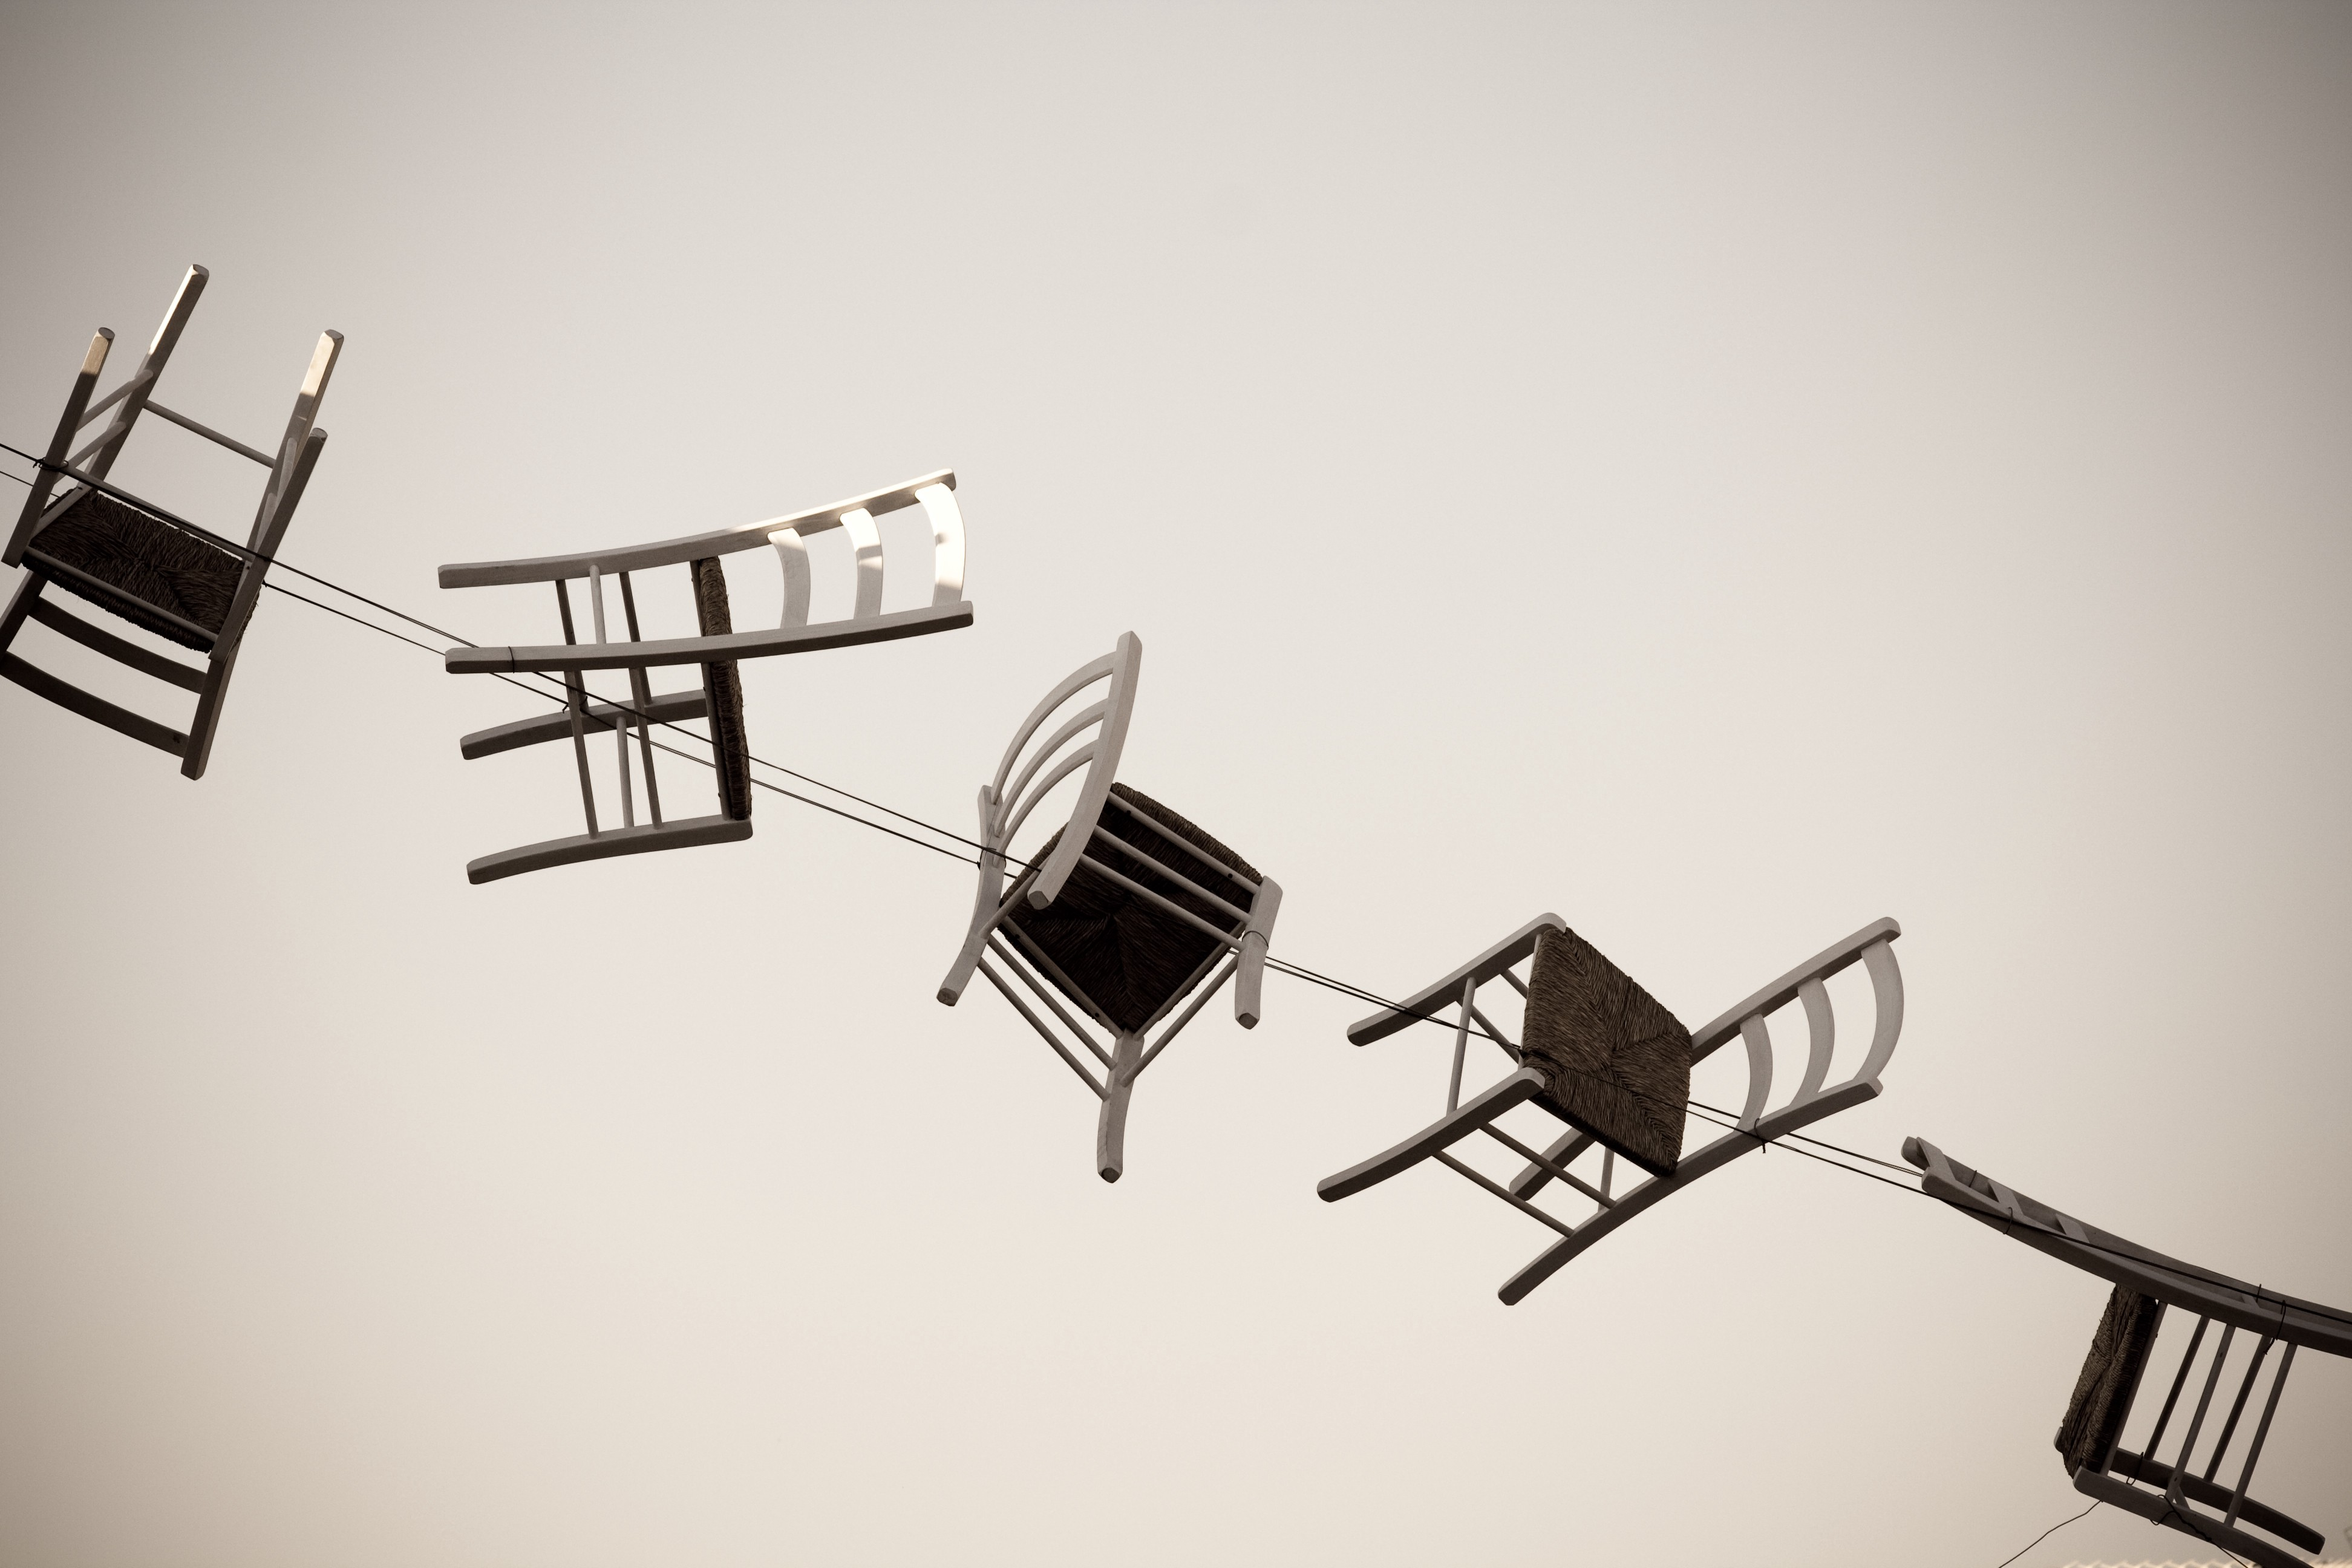 Image of a string of chairs